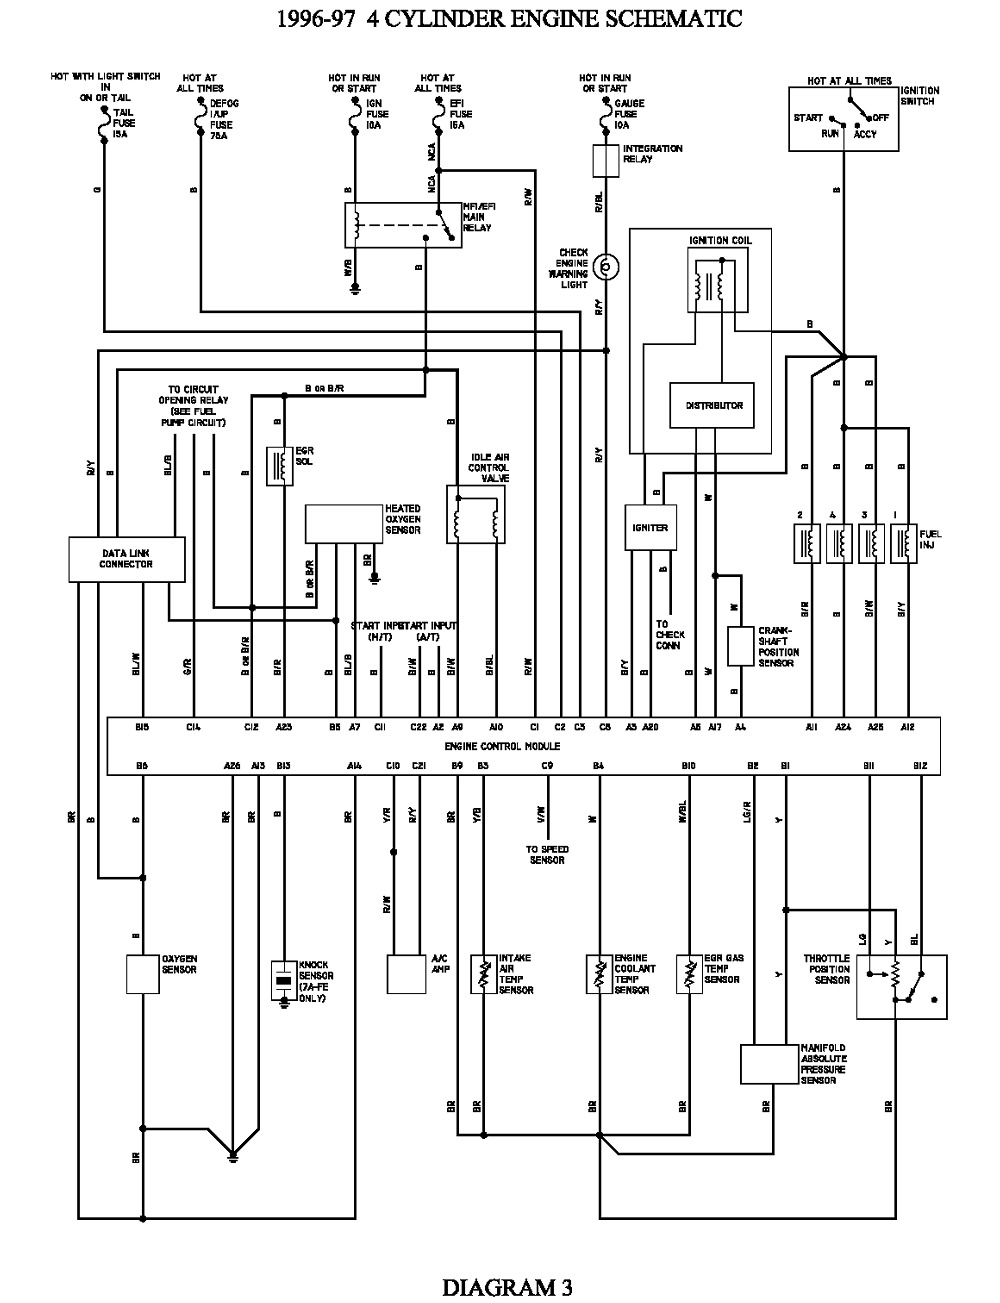 toyota corolla wiring diagram Collection-Toyota Corolla Wiring Diagram Awesome toyota Wiring Diagram Dolgular 9-p